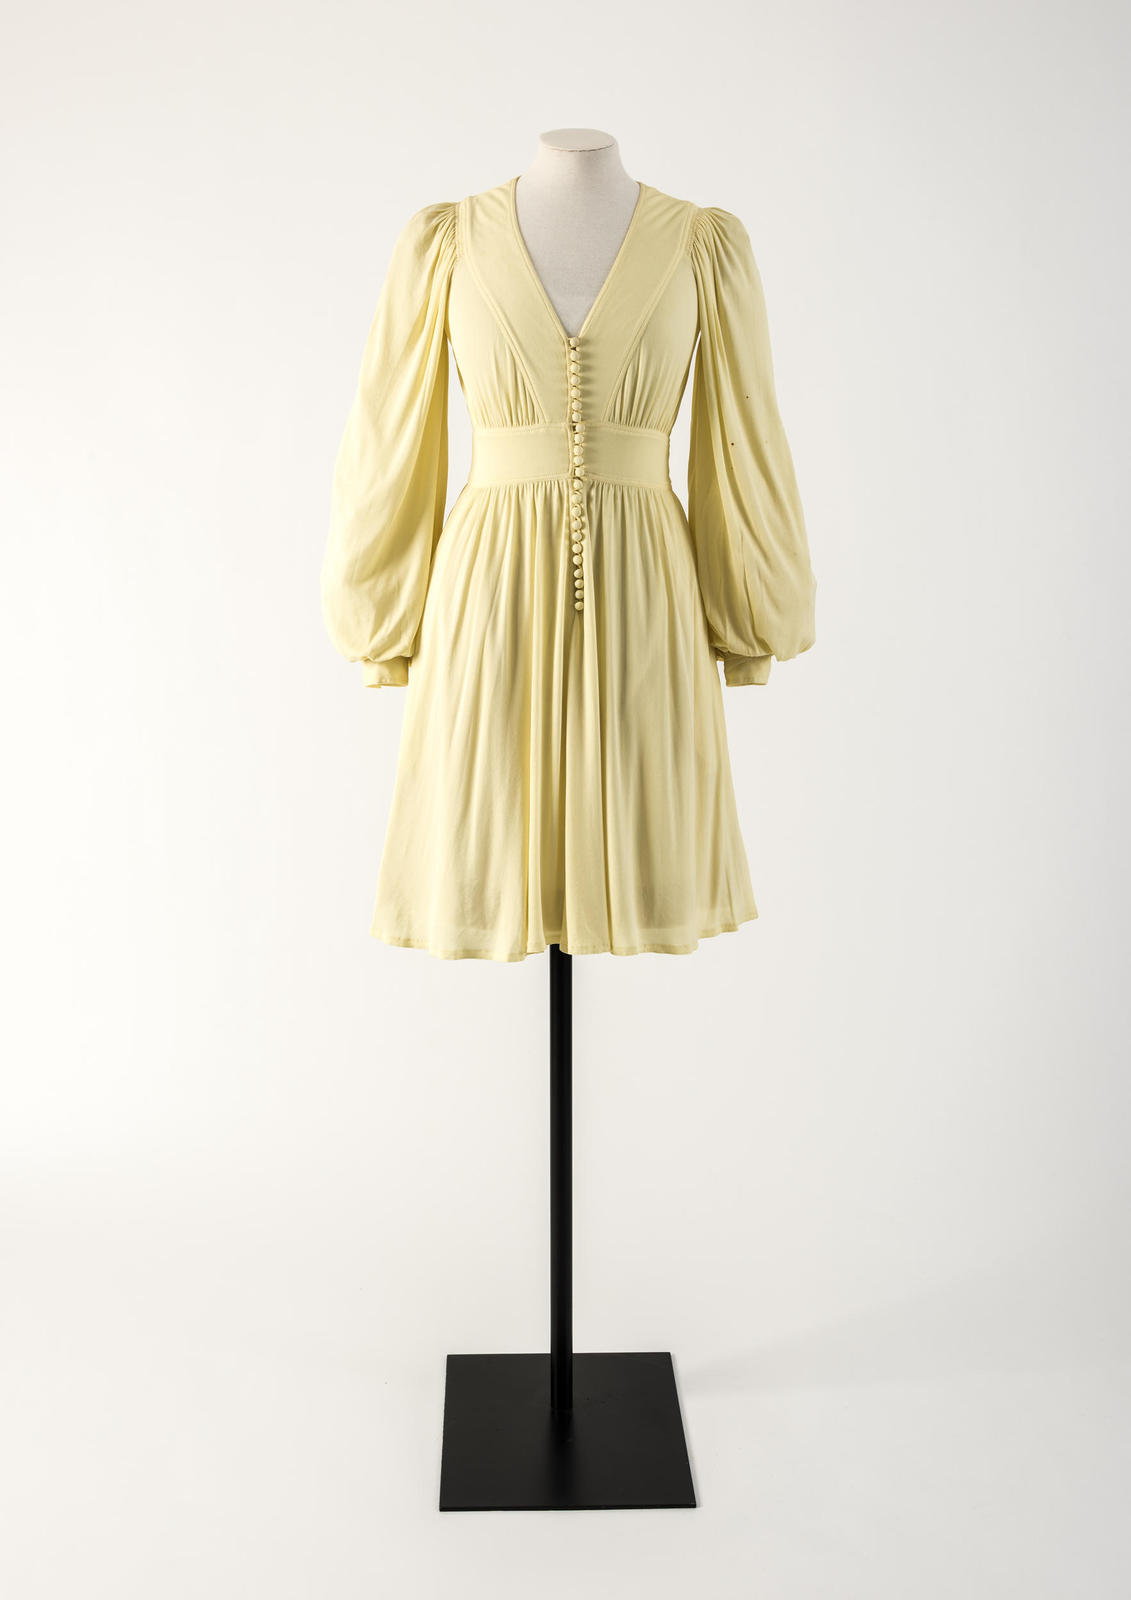 Lemon yellow rayon jersey dress with row of domed buttons. Jean Muir, 1974